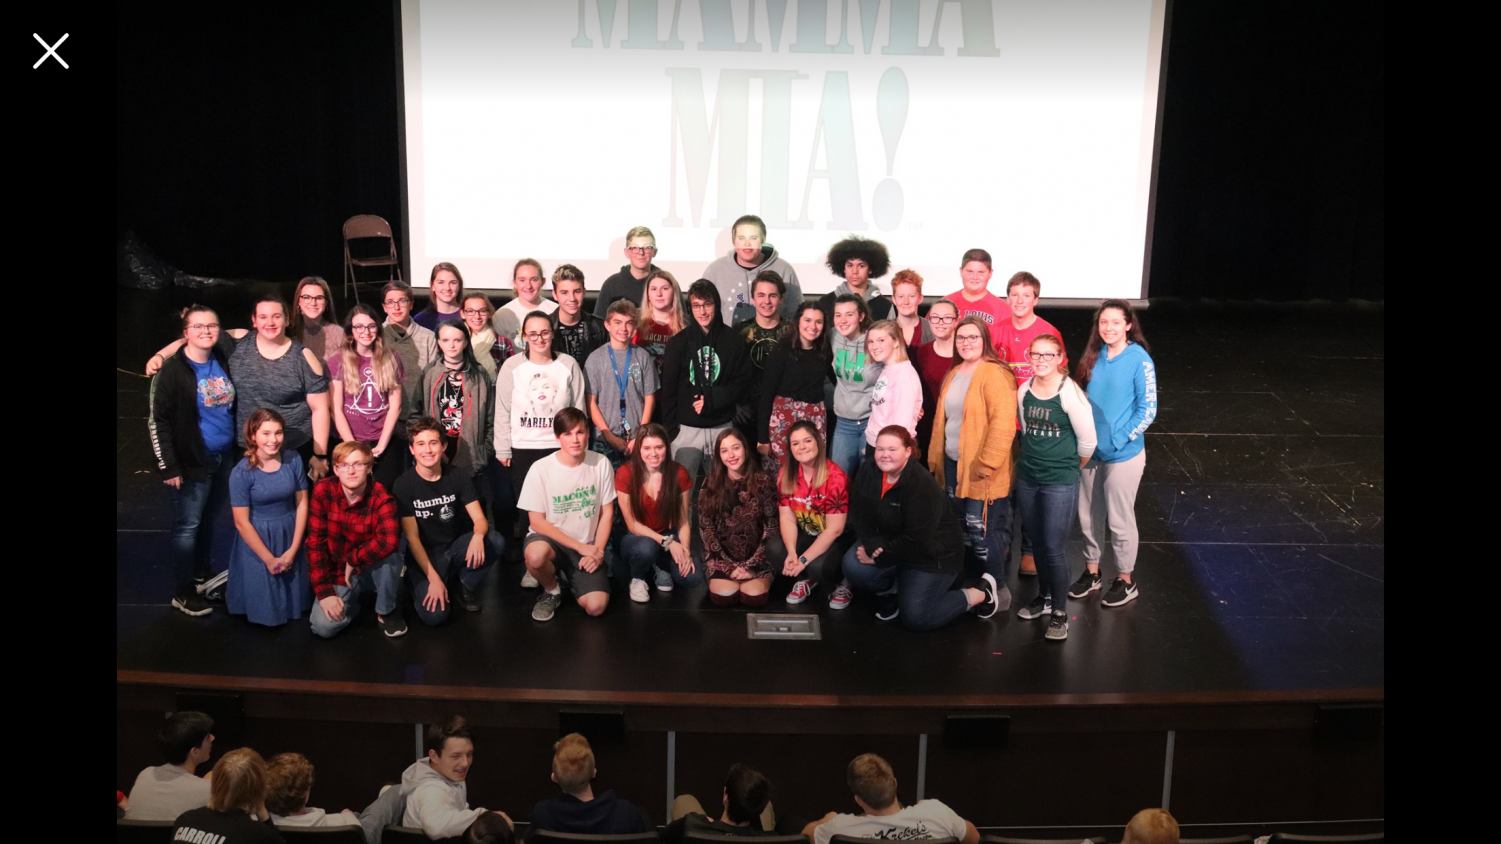 The cast and crew in their celebratory cast announcement photo.